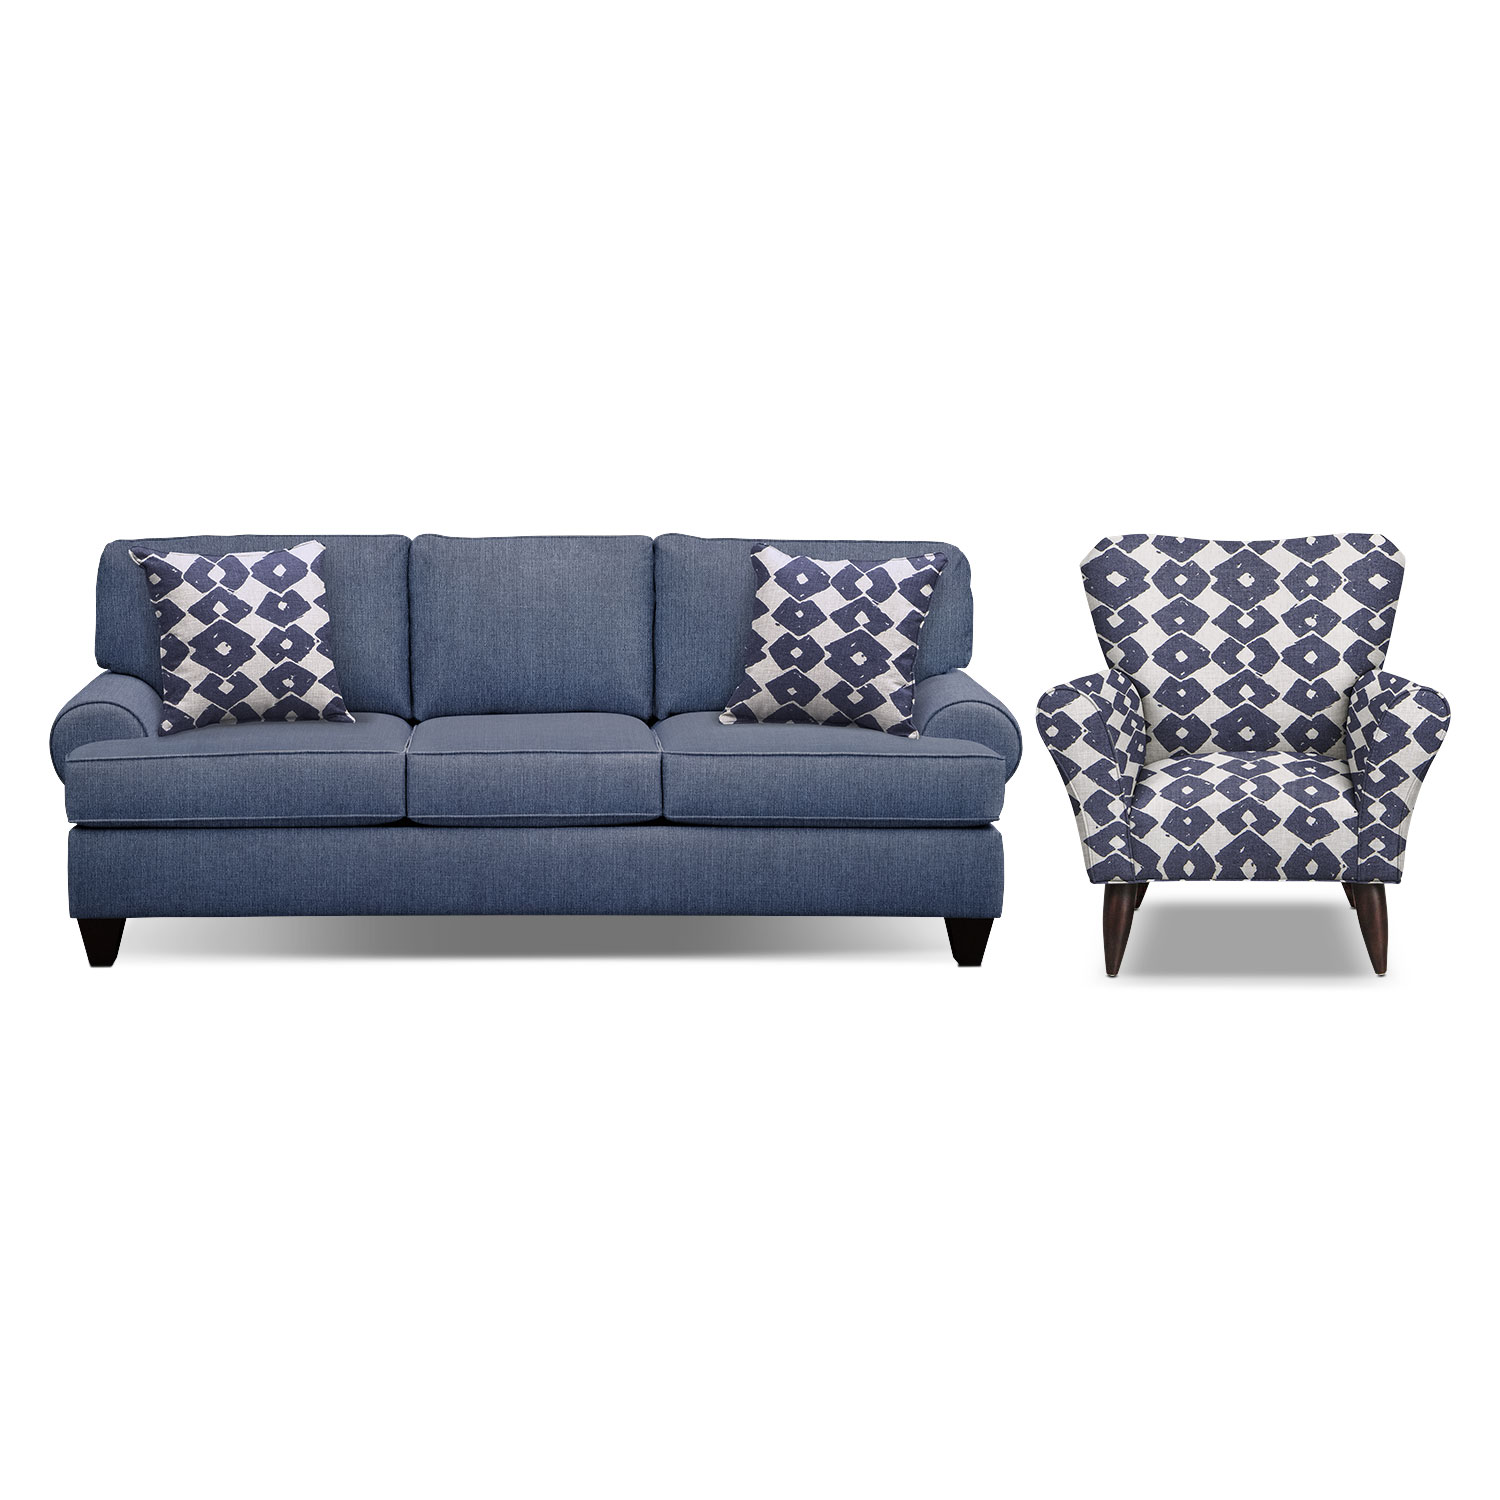 "Living Room Furniture - Bailey Blue 91"" Innerspring Sleeper Sofa and Accent Chair Set"